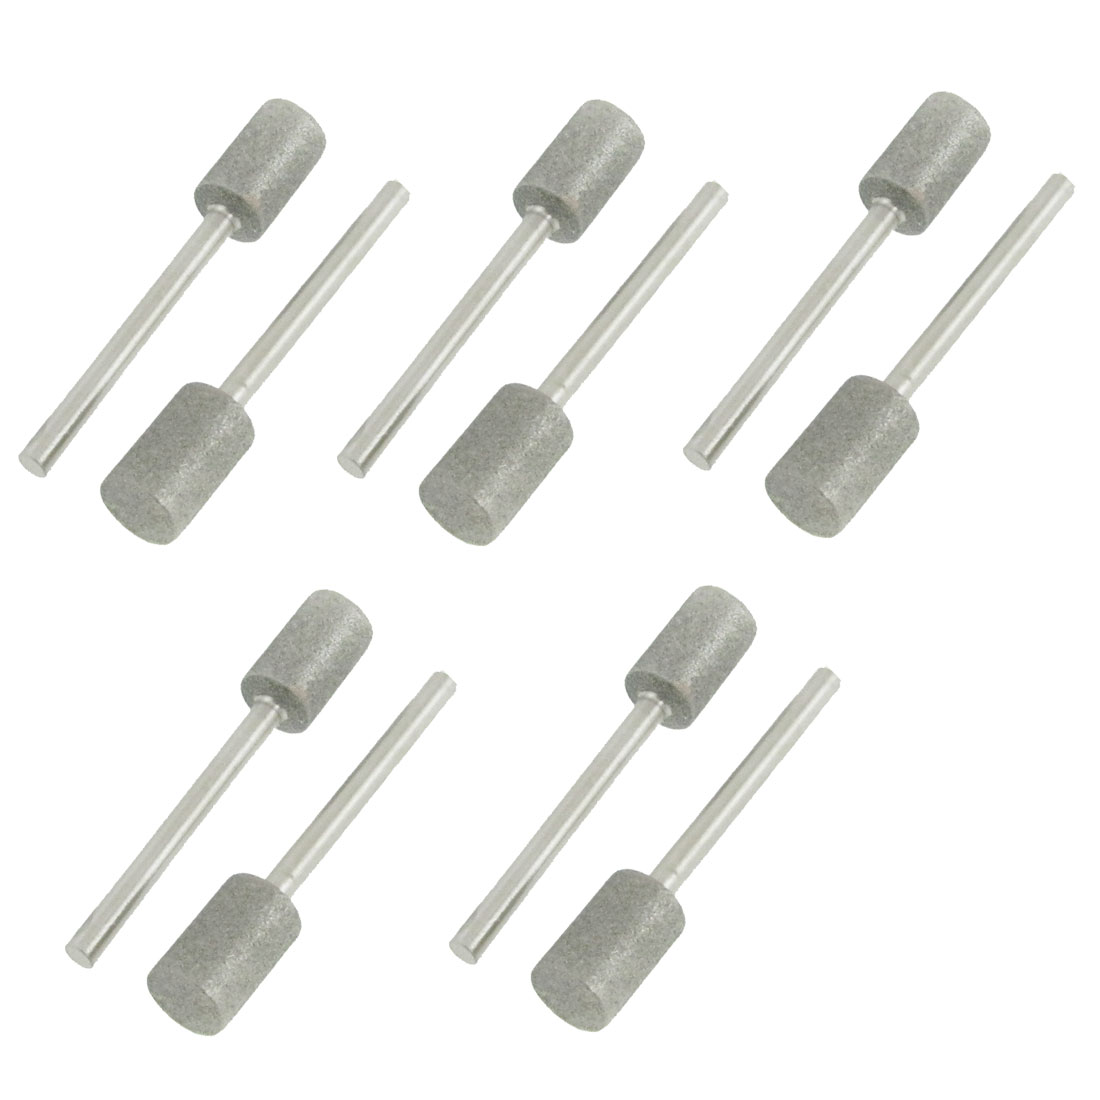 8mm Diameter Cylindrical Head Diamond Mounted Point 10 Pcs